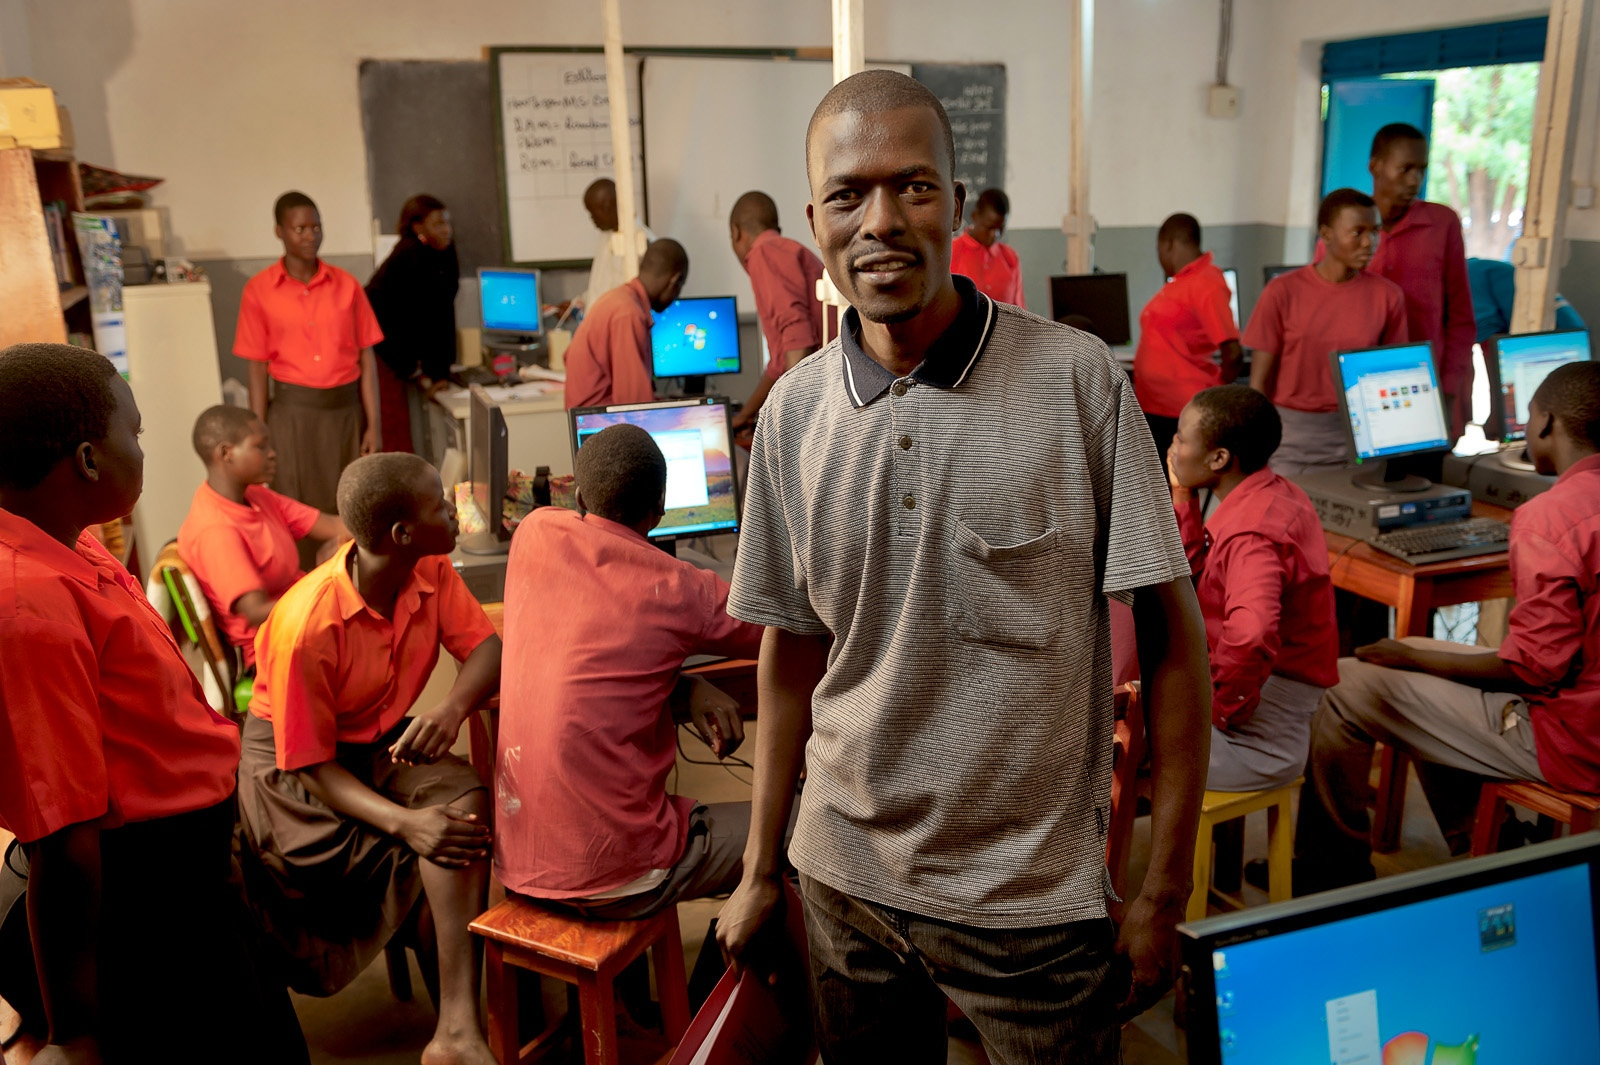 IT class teacher, Denis, Irene Gleeson Foundation, Uganda